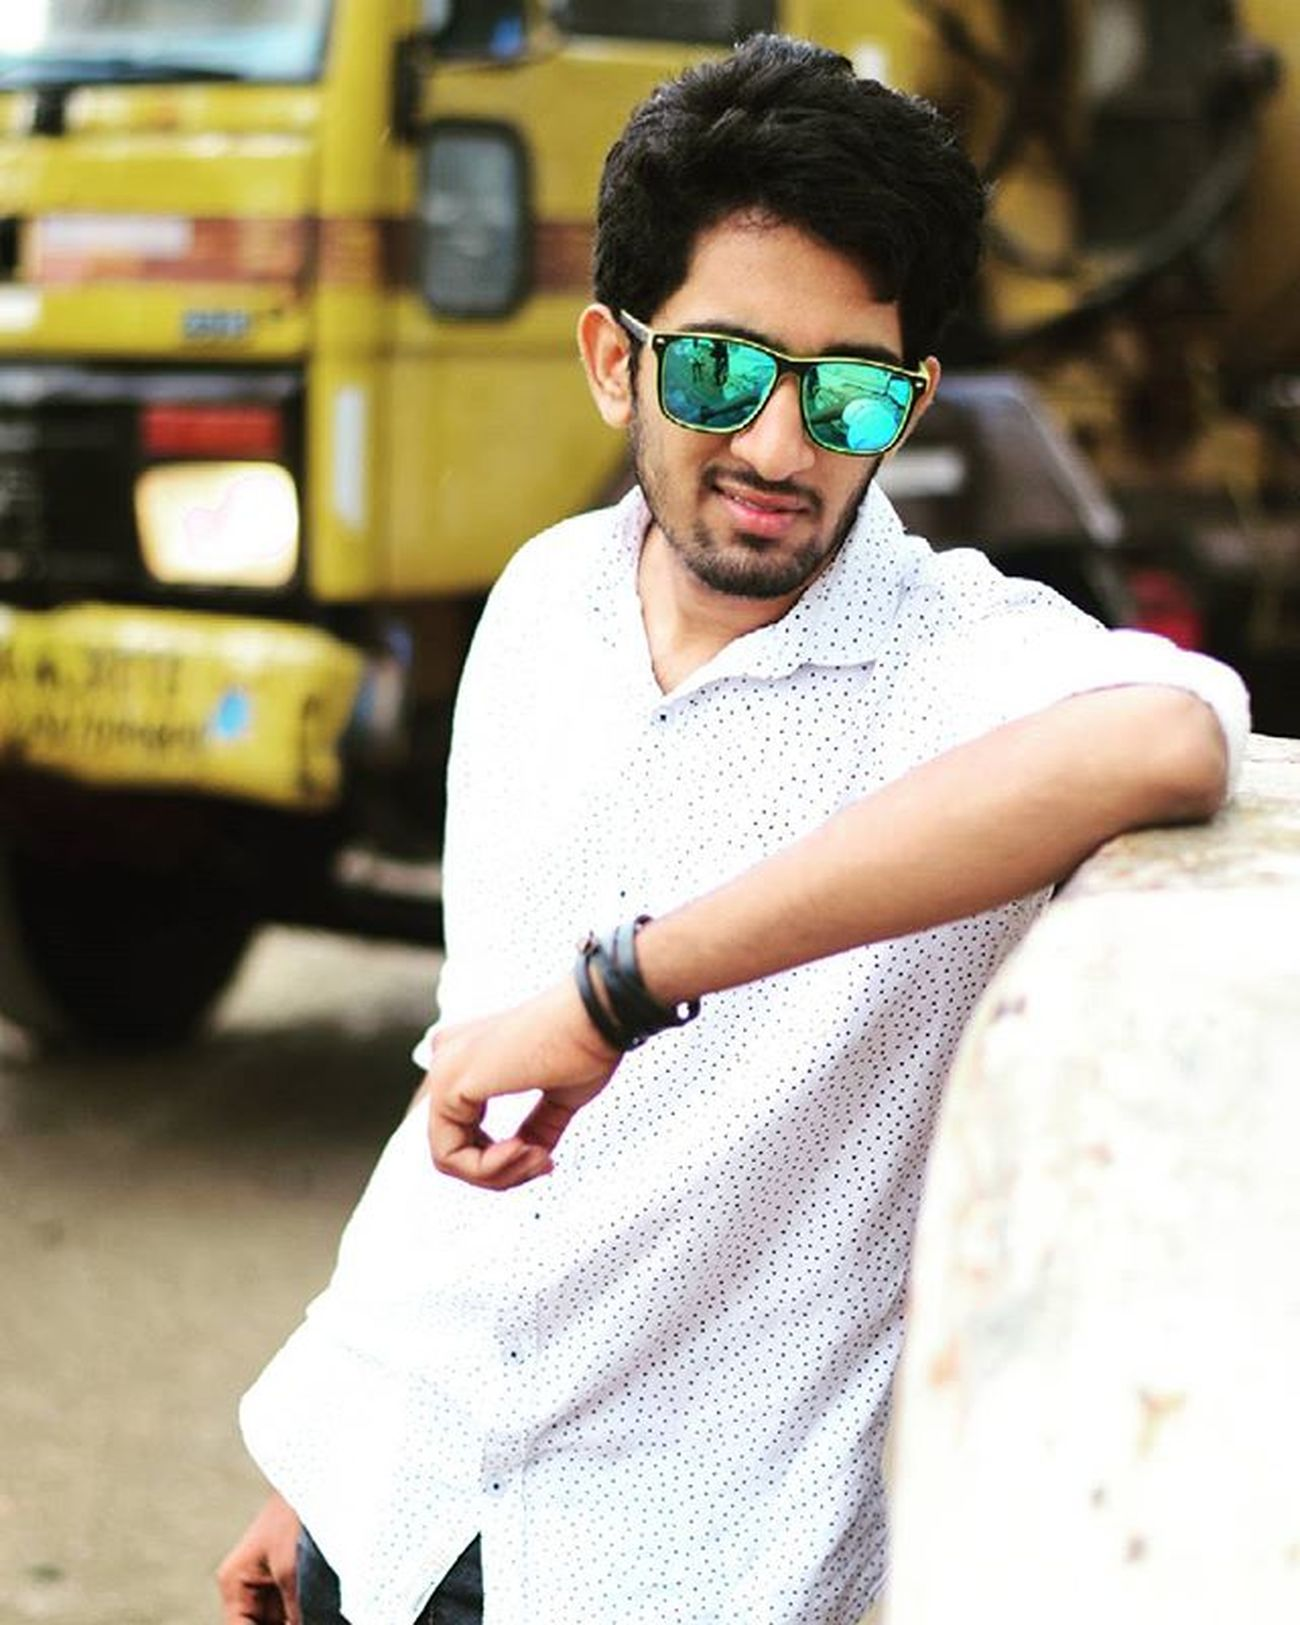 Funtimes Throwback Rayban Pic_captured : @manohartemper